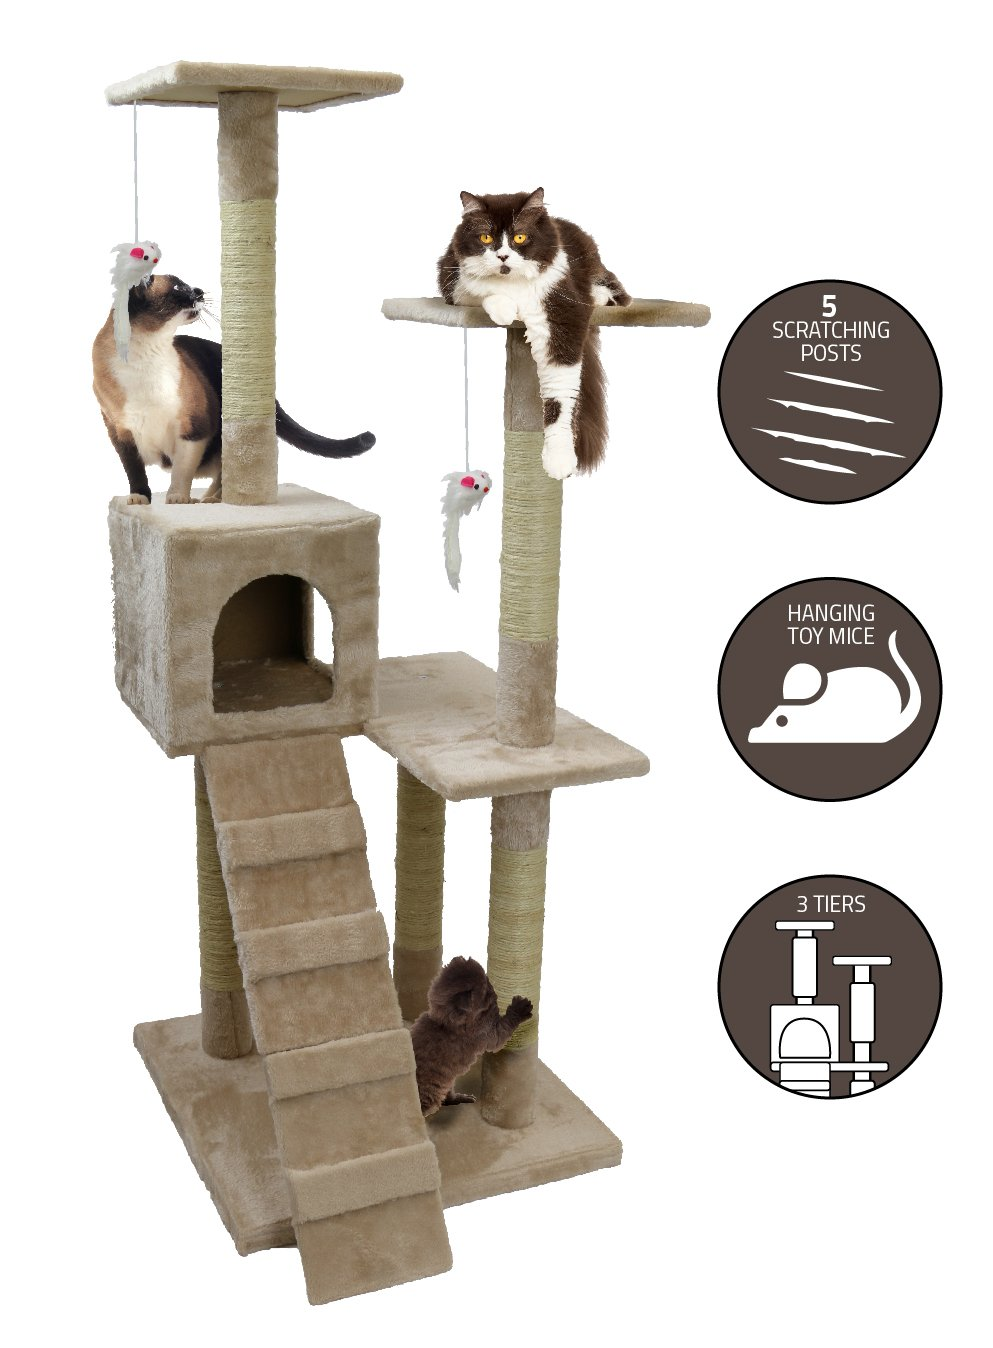 Large Cat Tree House - 4 Foot Tall Soft Felt Carpet Climbing Play Tower and Scratcher for Pets to Play, Scratch and Rest – Three Levels with Ramps, Fort and Mouse Toys – Easy Assembly – by Petlo